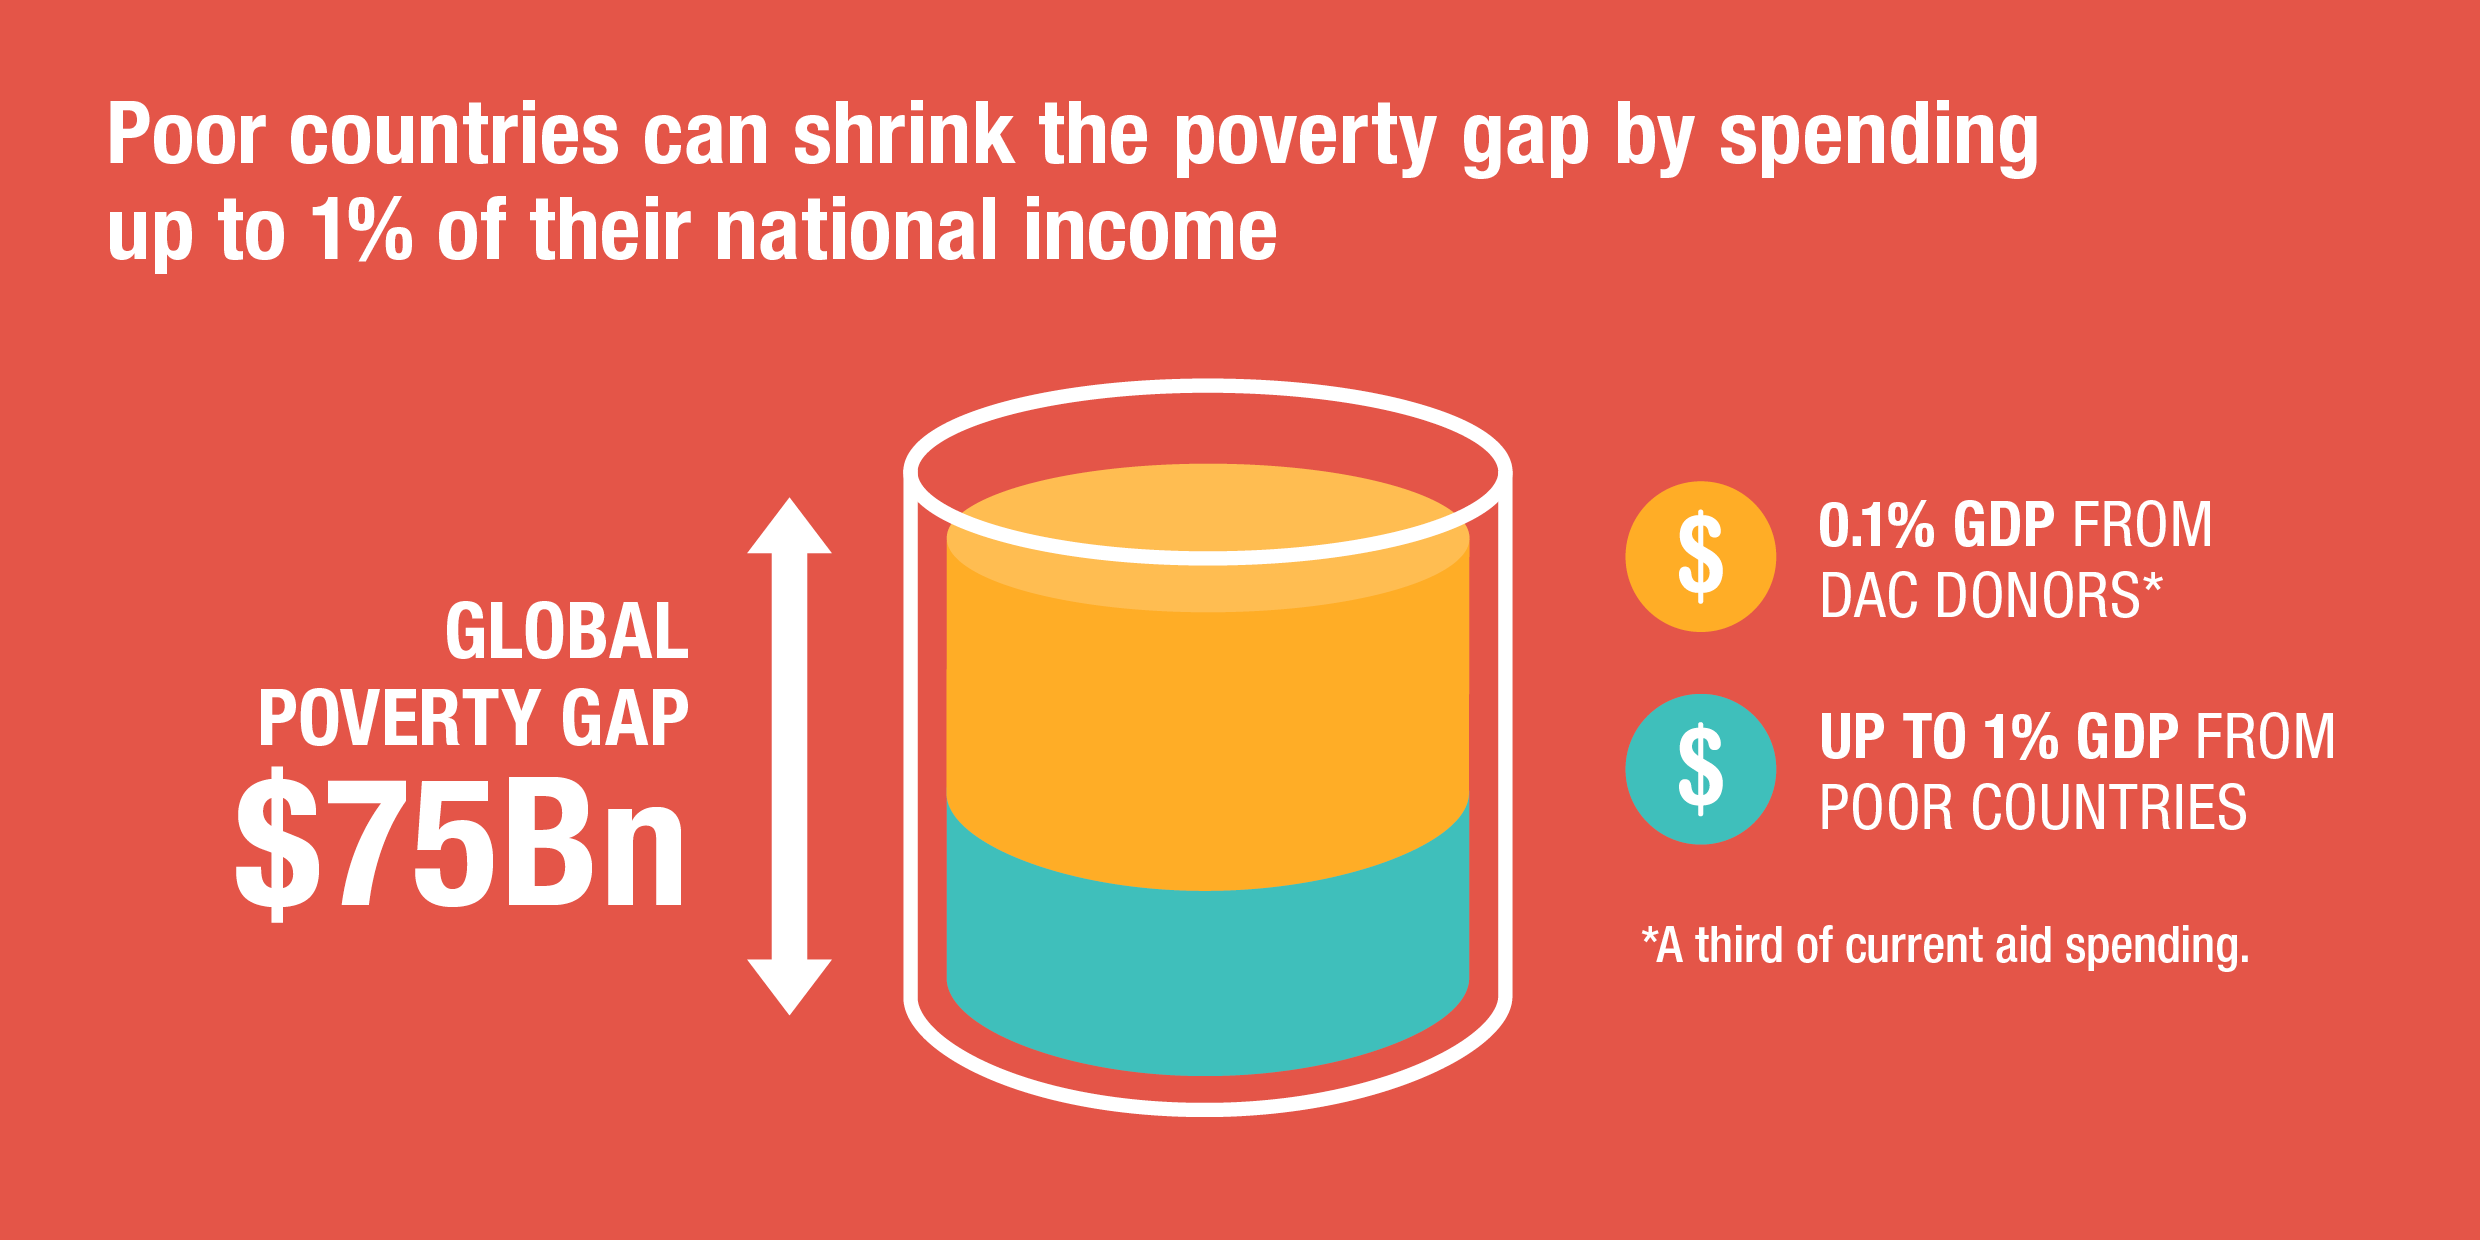 Poor countries can shrink the poverty gap by spending up to 1% of their national income